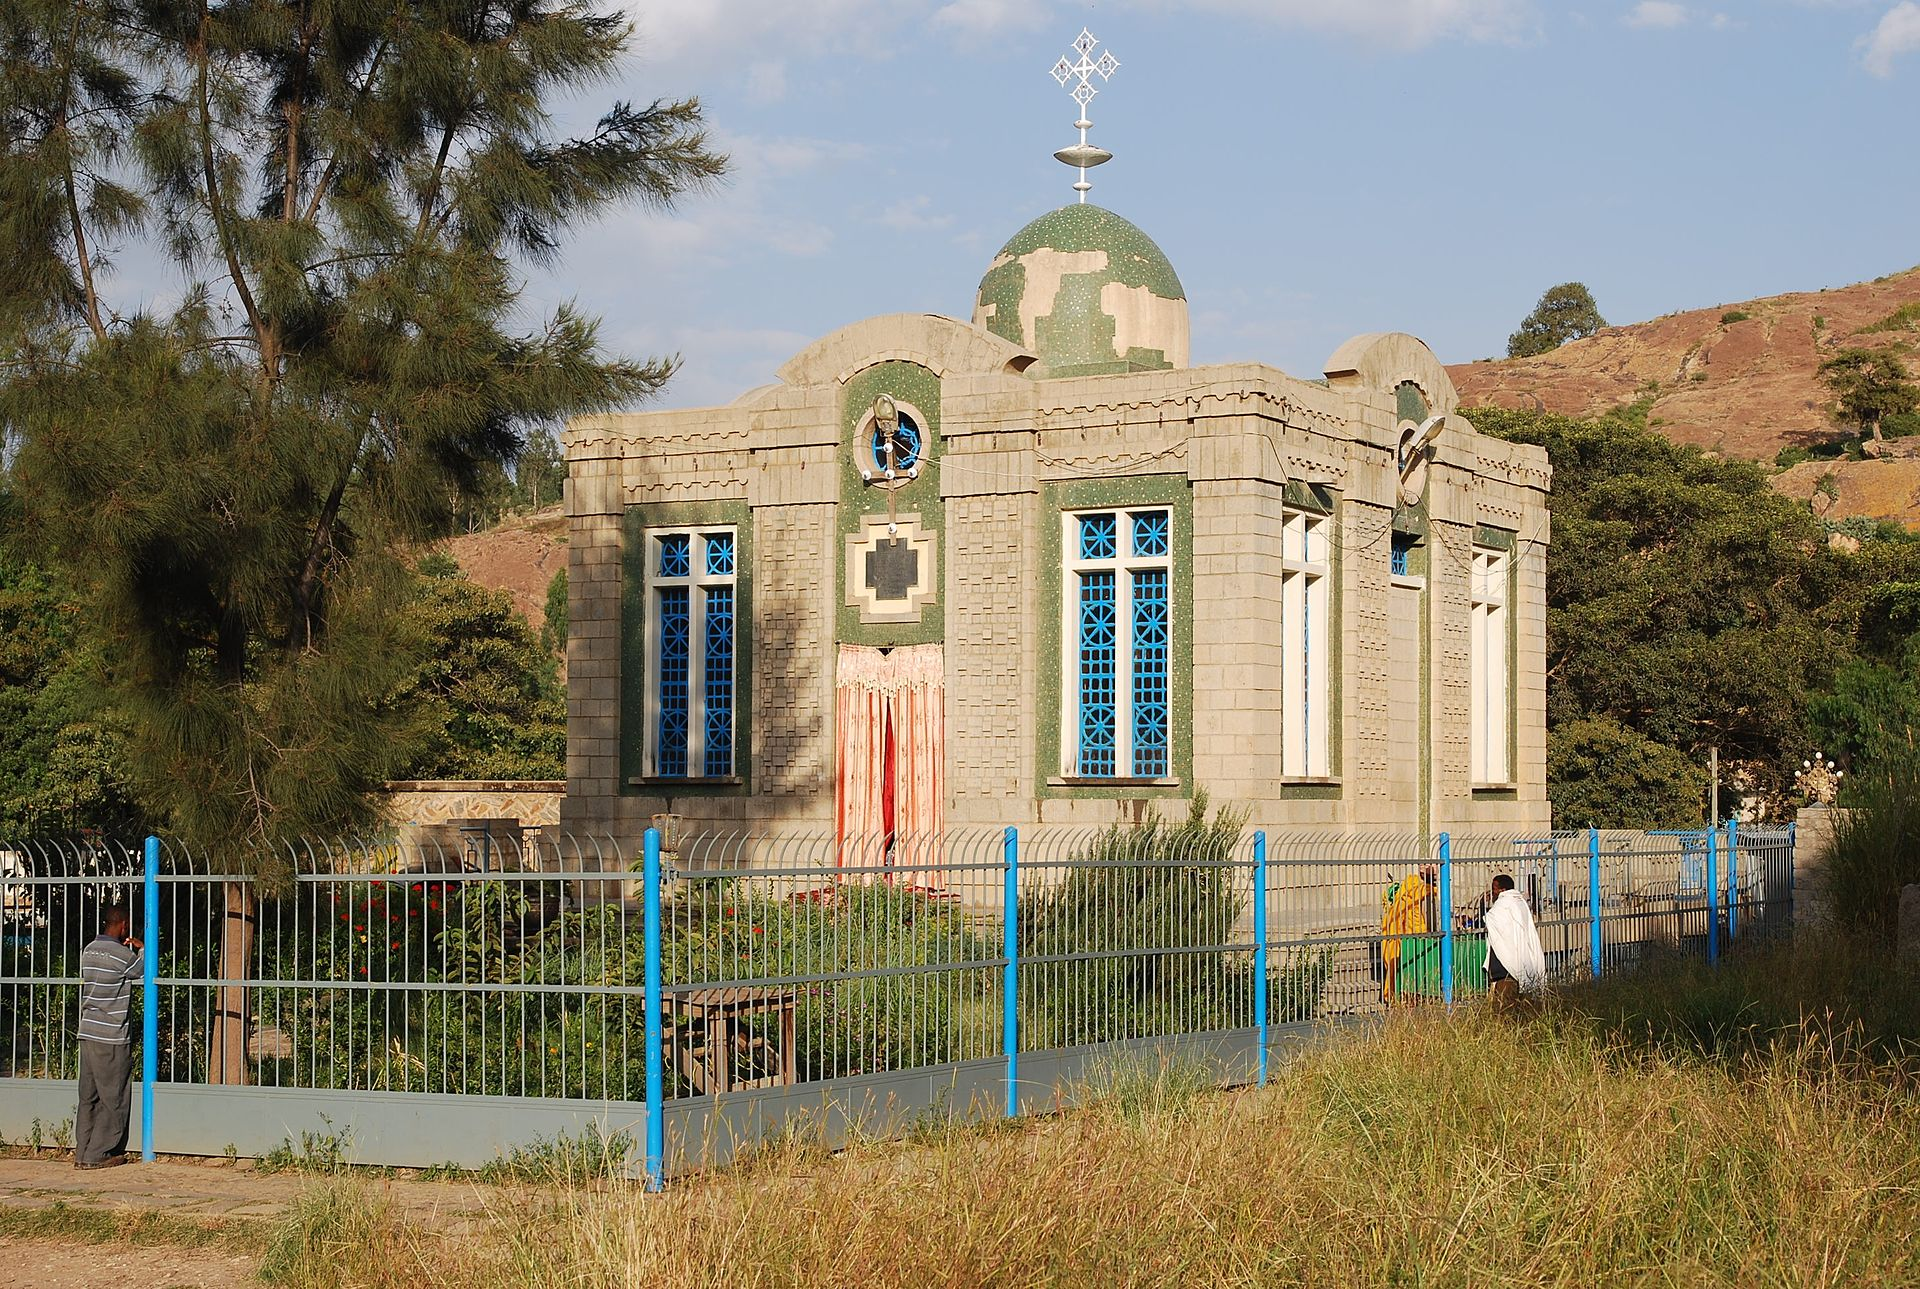 The chapel in Axum, Ethiopia, where the Ark of the Covenant is supposedly kept. Photo source: Wikipedia